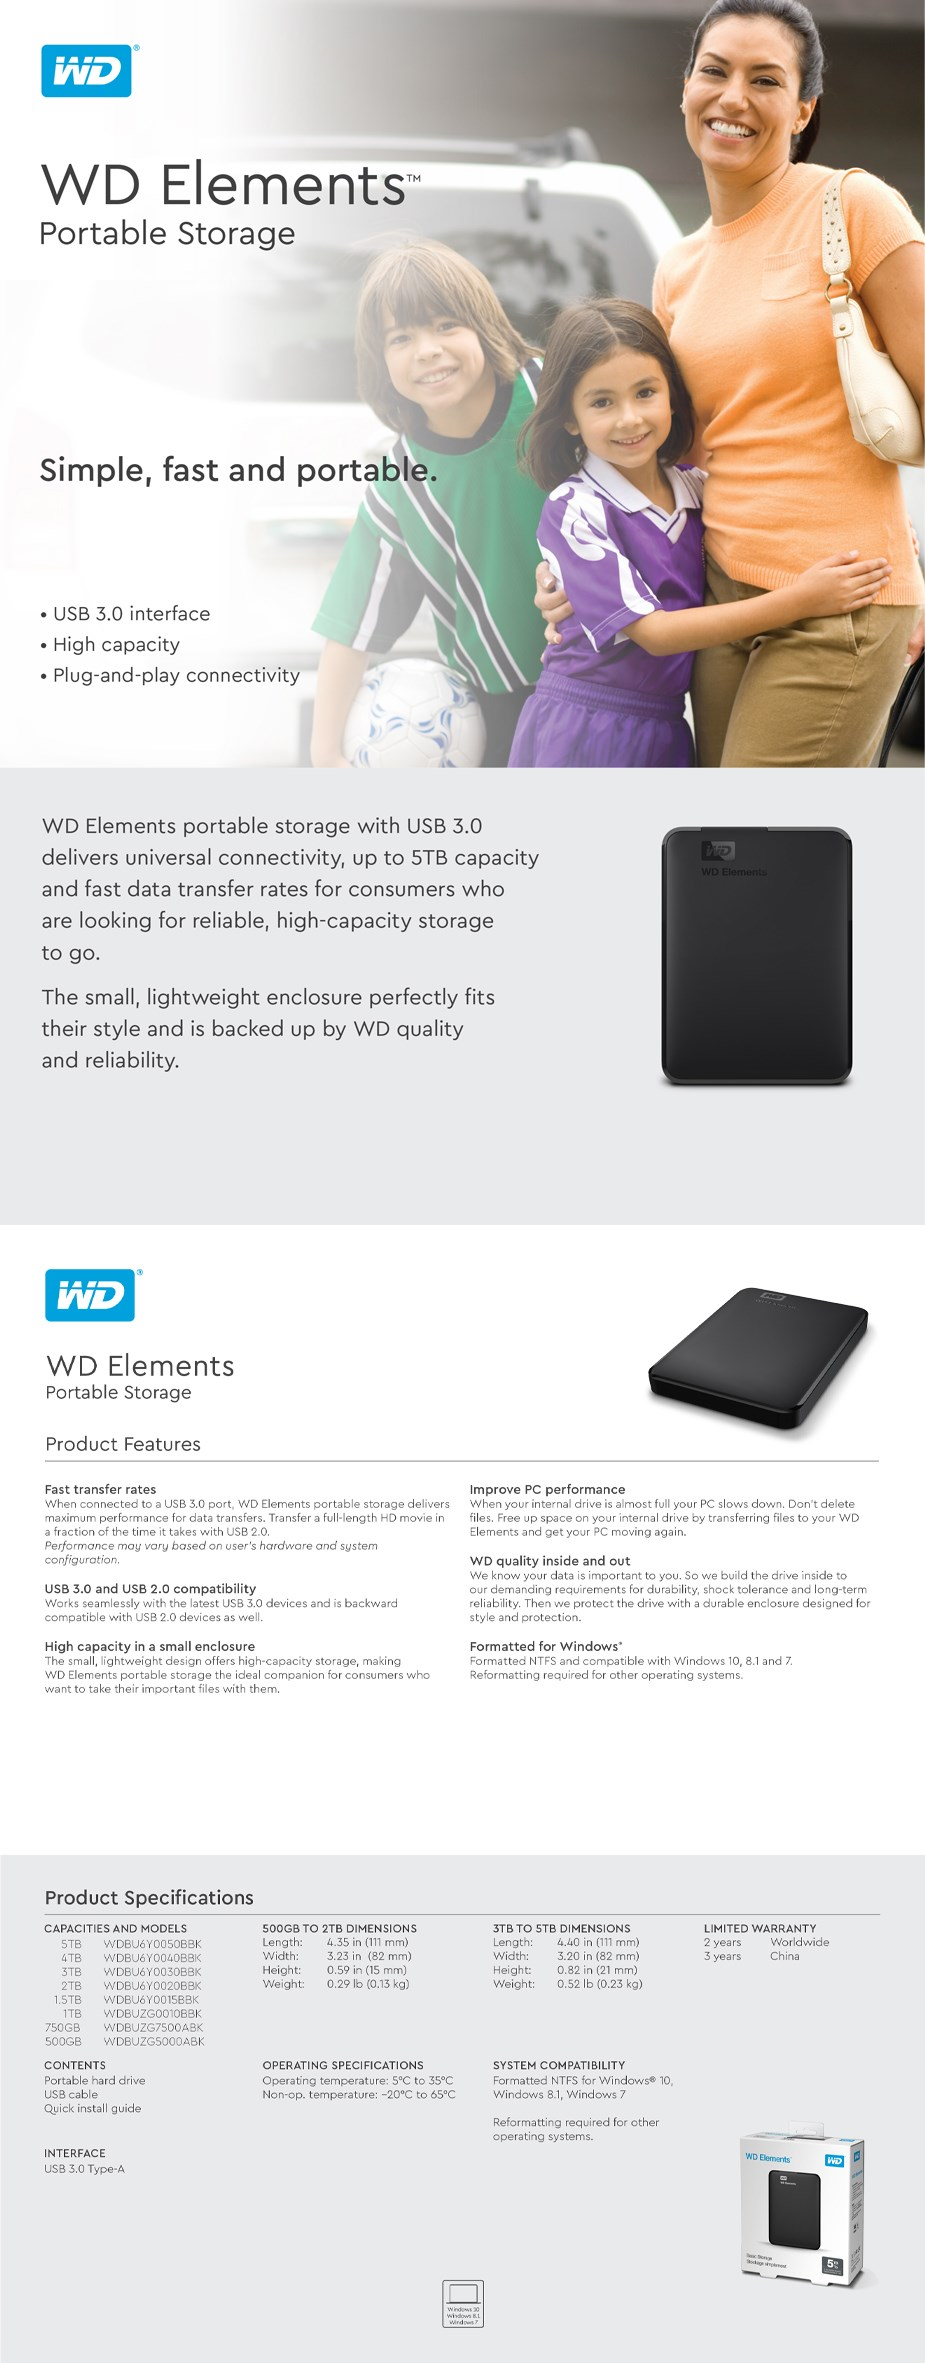 WD Elements USB 3.0 Portable External Hard Drive Series - Overview 1